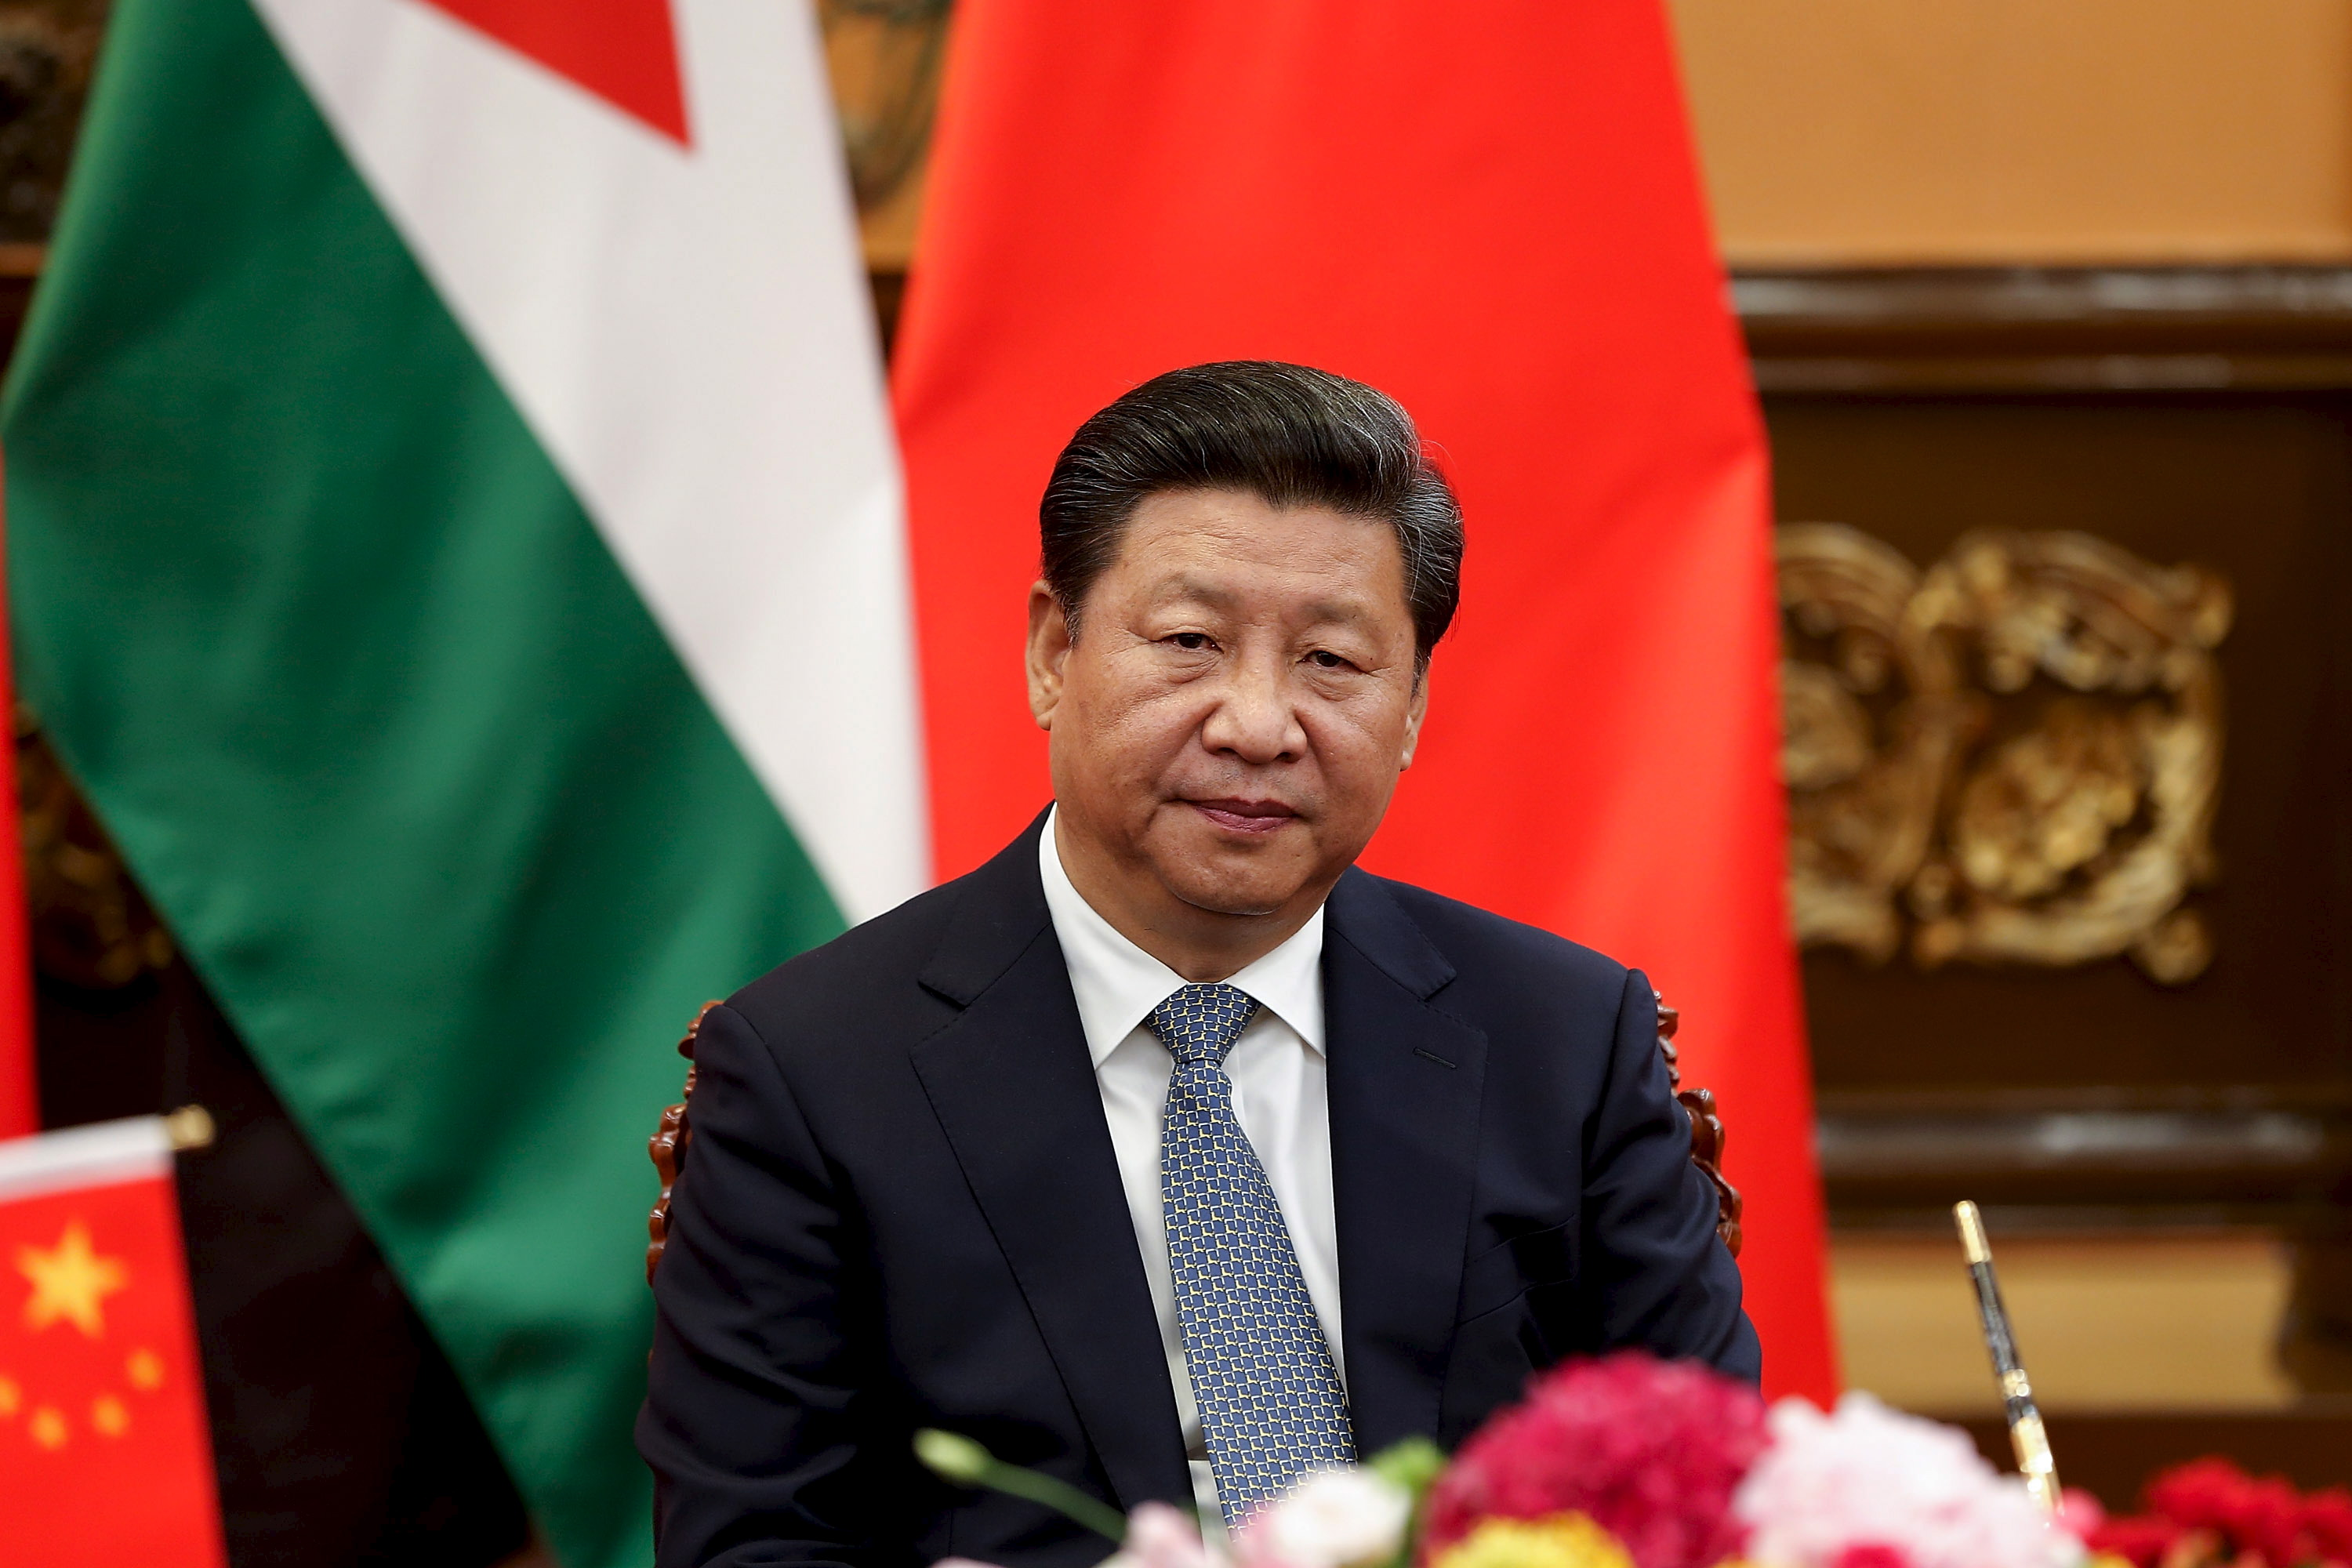 China's President Xi Jinping attends a signing ceremony with King of Jordan Abdullah II (not pictured) at he Great Hall of the People in Beijing on Sept. 9, 2015